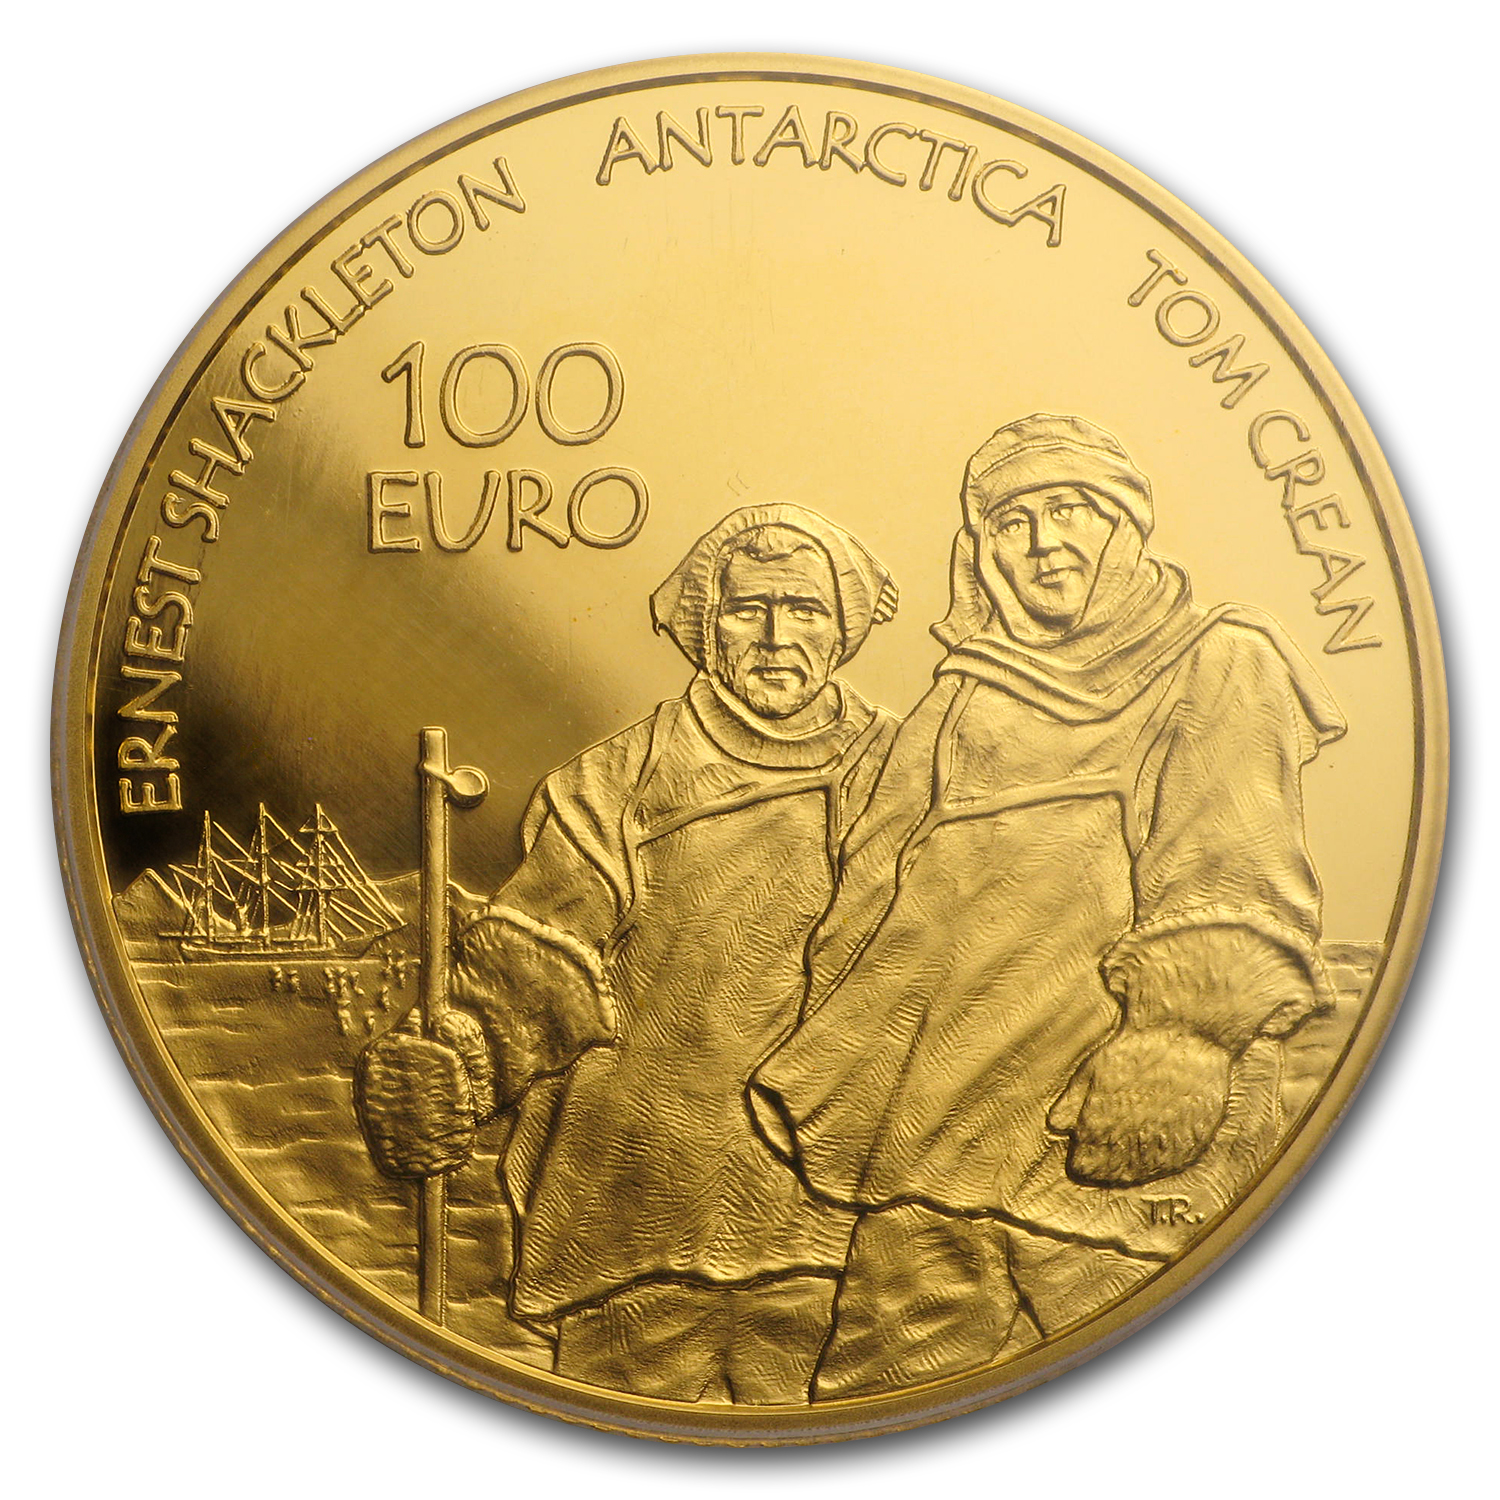 Ireland 2008 €100 Gold Proof International Polar Year